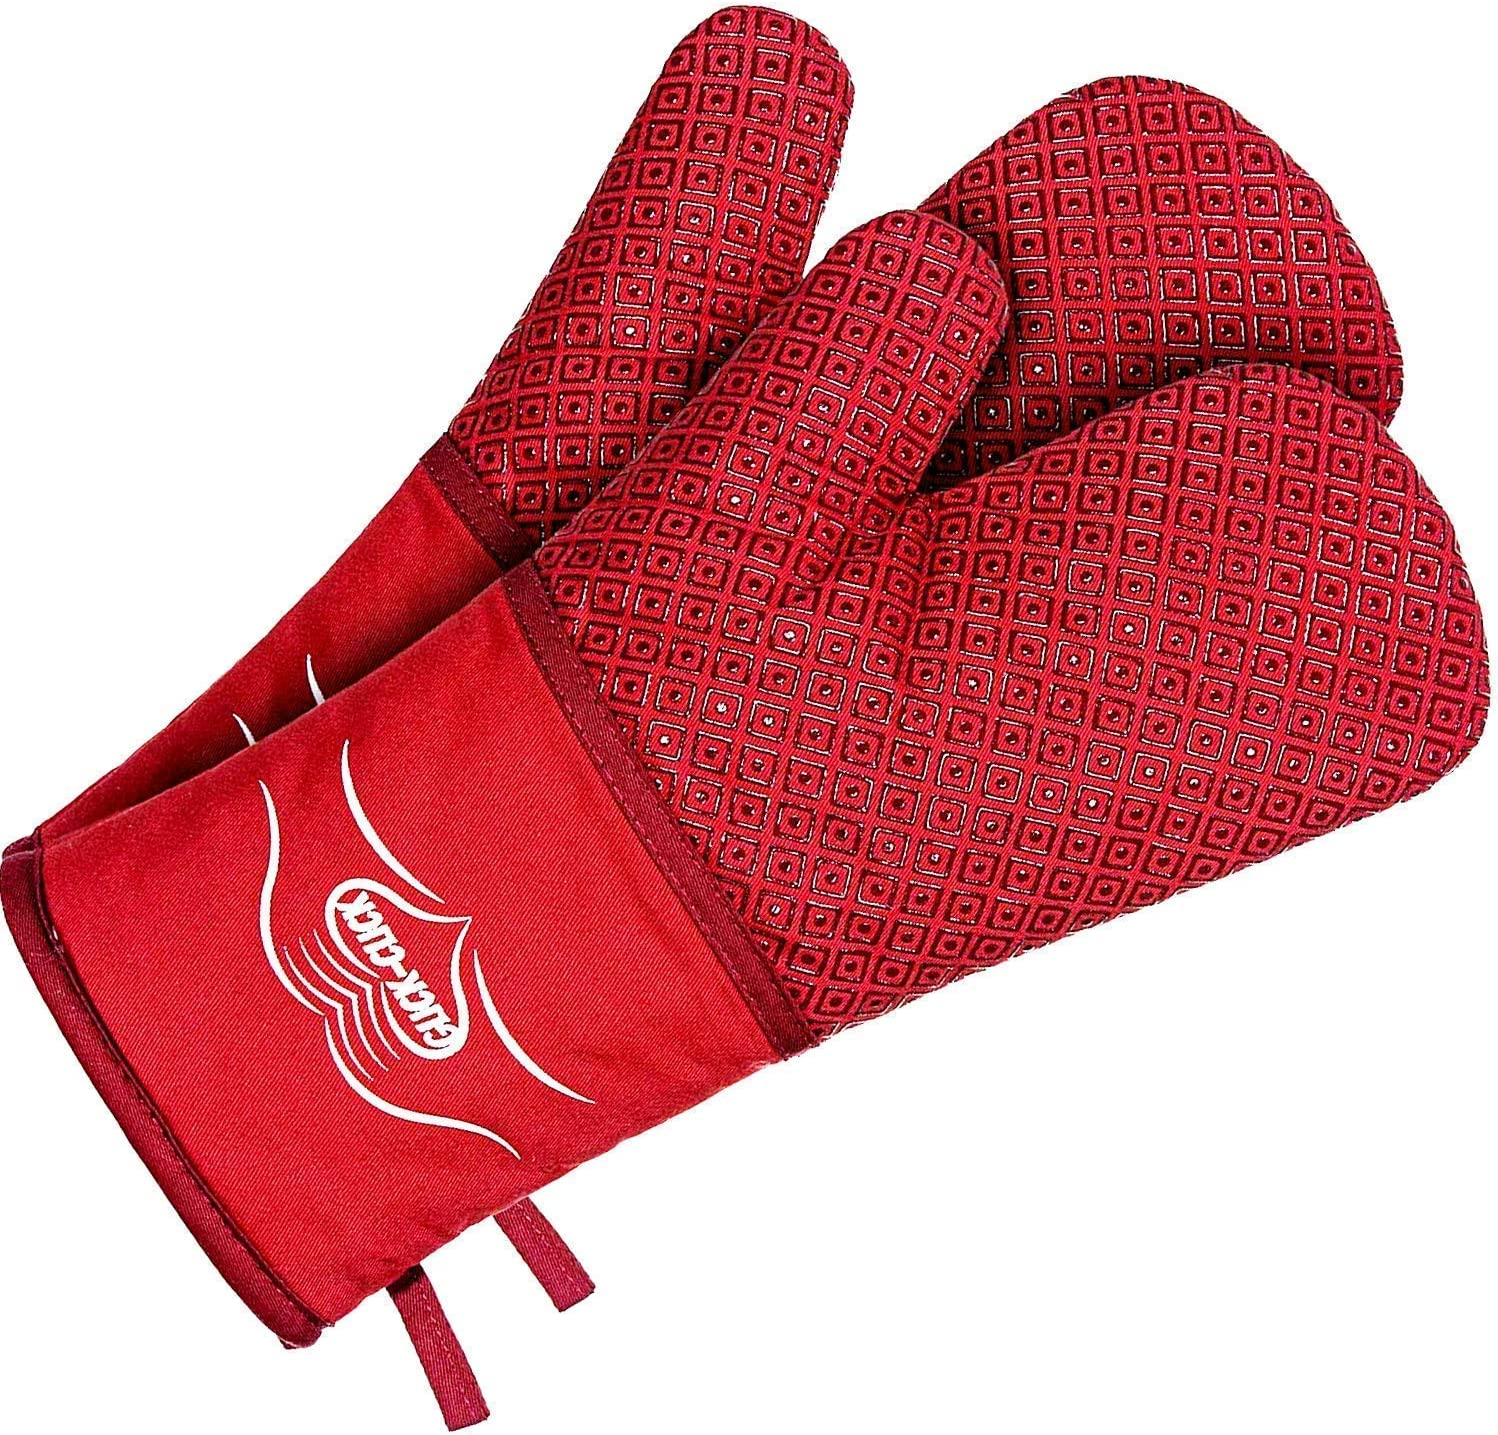 Red pot holders & Extra Long Oven Mitts Set. Heat resistant to 500 degrees. hot pads pair of gloves. Best for grill, BBQ, cook and bake. Great kitchen mittens, with a special silicone pot holder